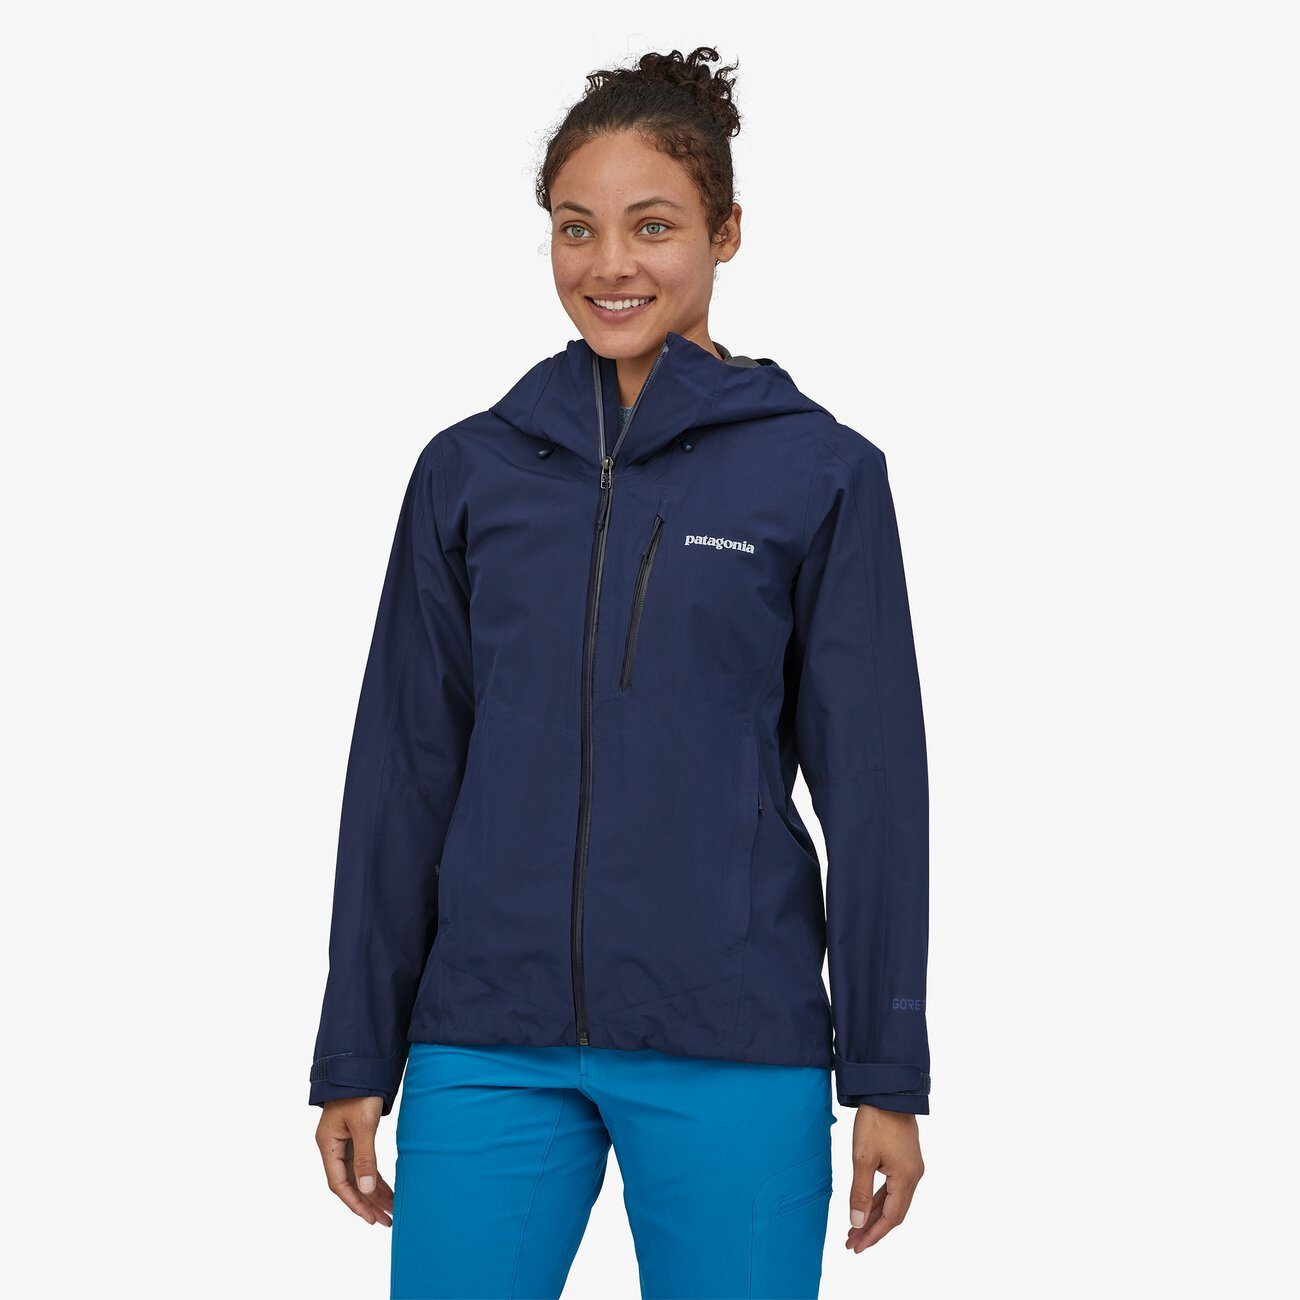 Patagonia - W's Calcite Shell Jacket - Gore-Tex - Recycled Polyester - Weekendbee - sustainable sportswear